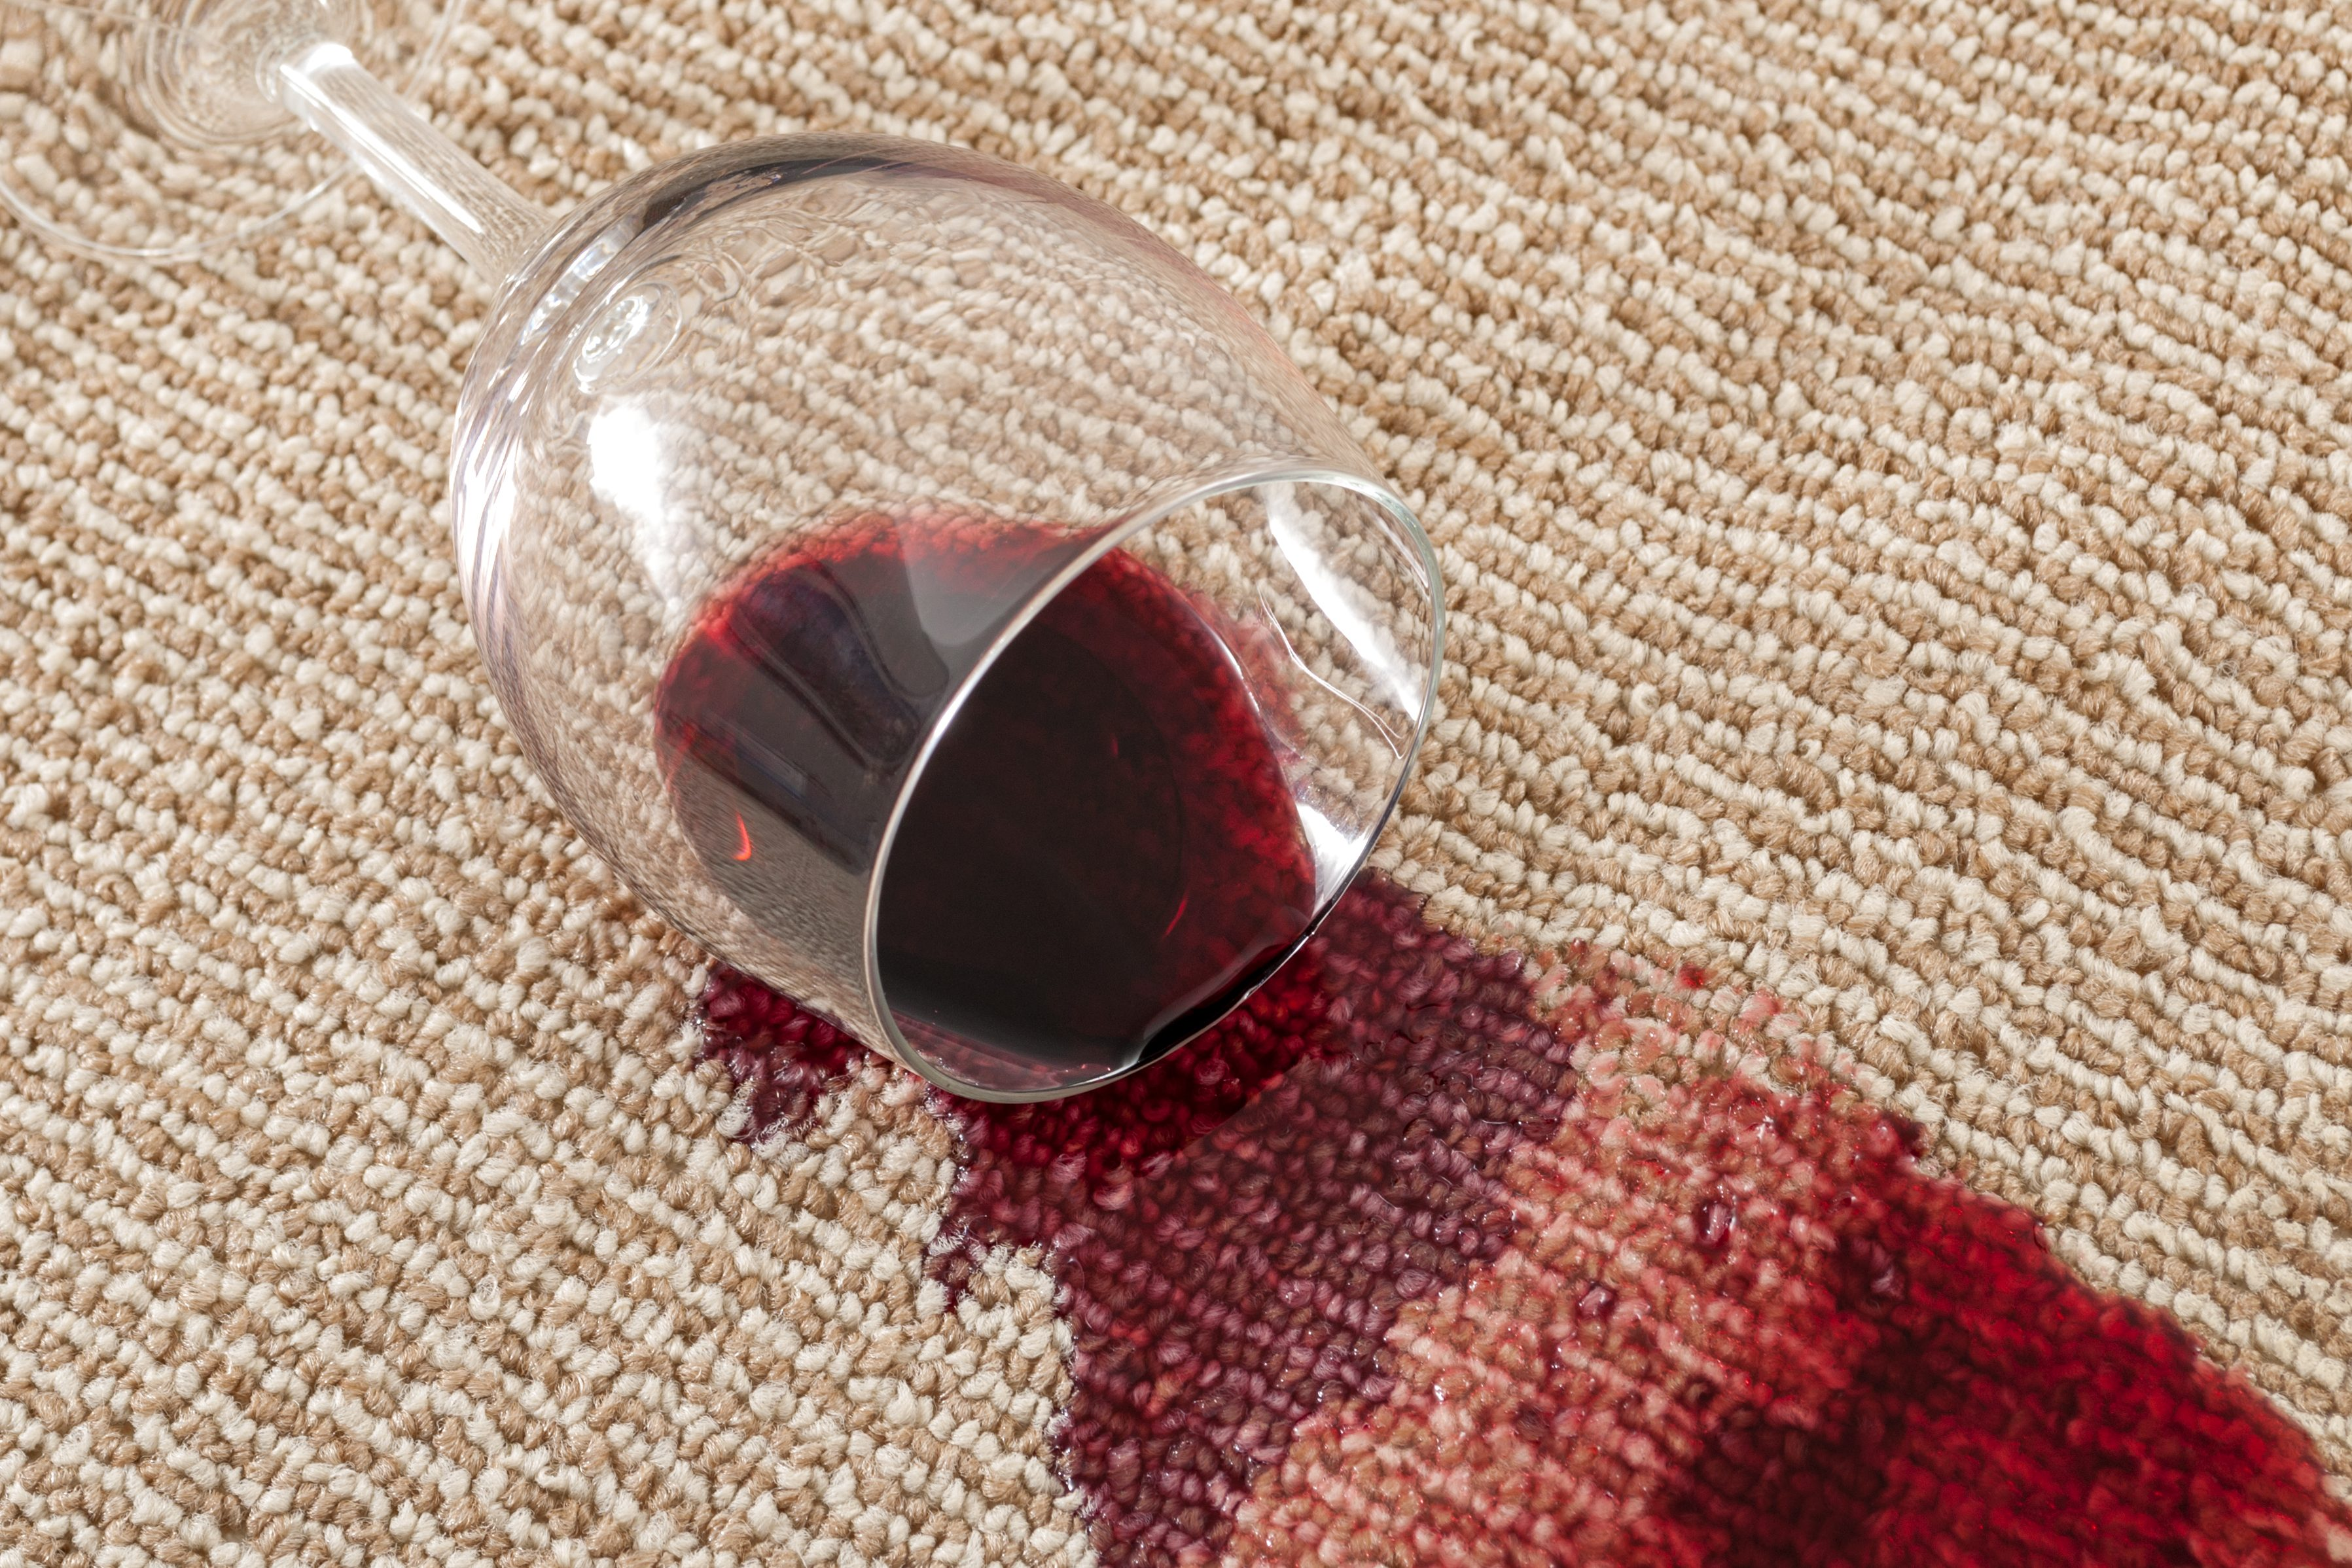 How To Remove Wine Stains All The Most Effective Remedies To Remove Them Cookist Com